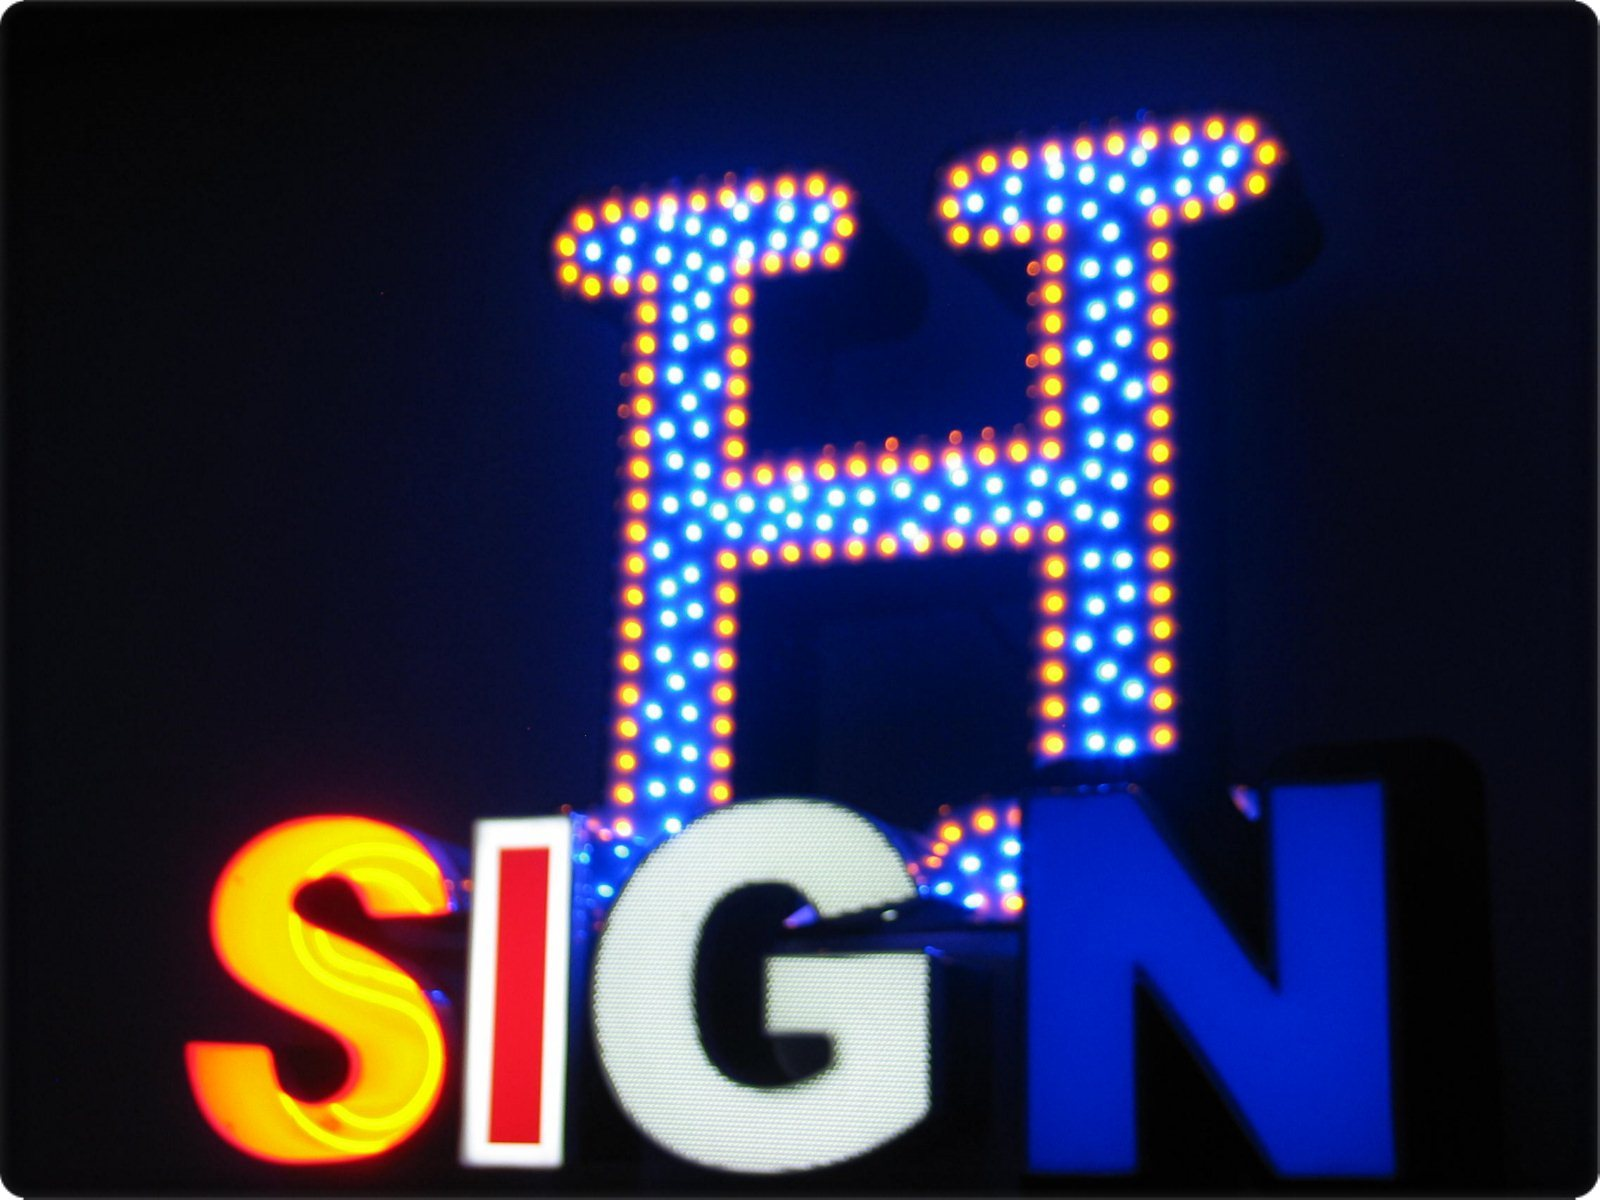 Signs ManufacturingS Channel Letter Signs Led Channel Letters Neon